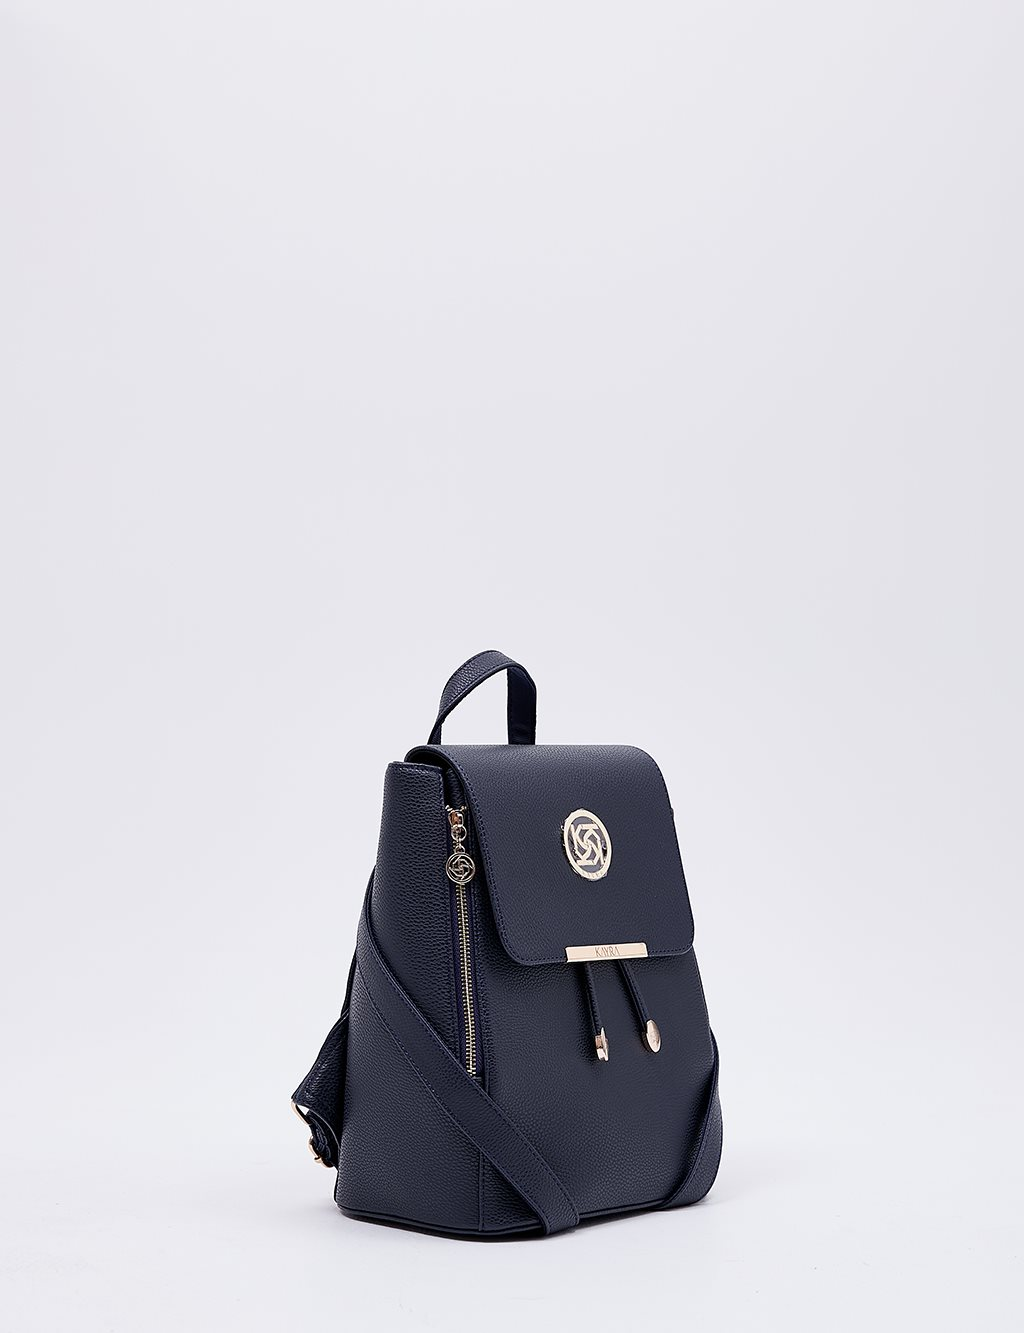 Backpack With Zipper B20 CNT01 Navy